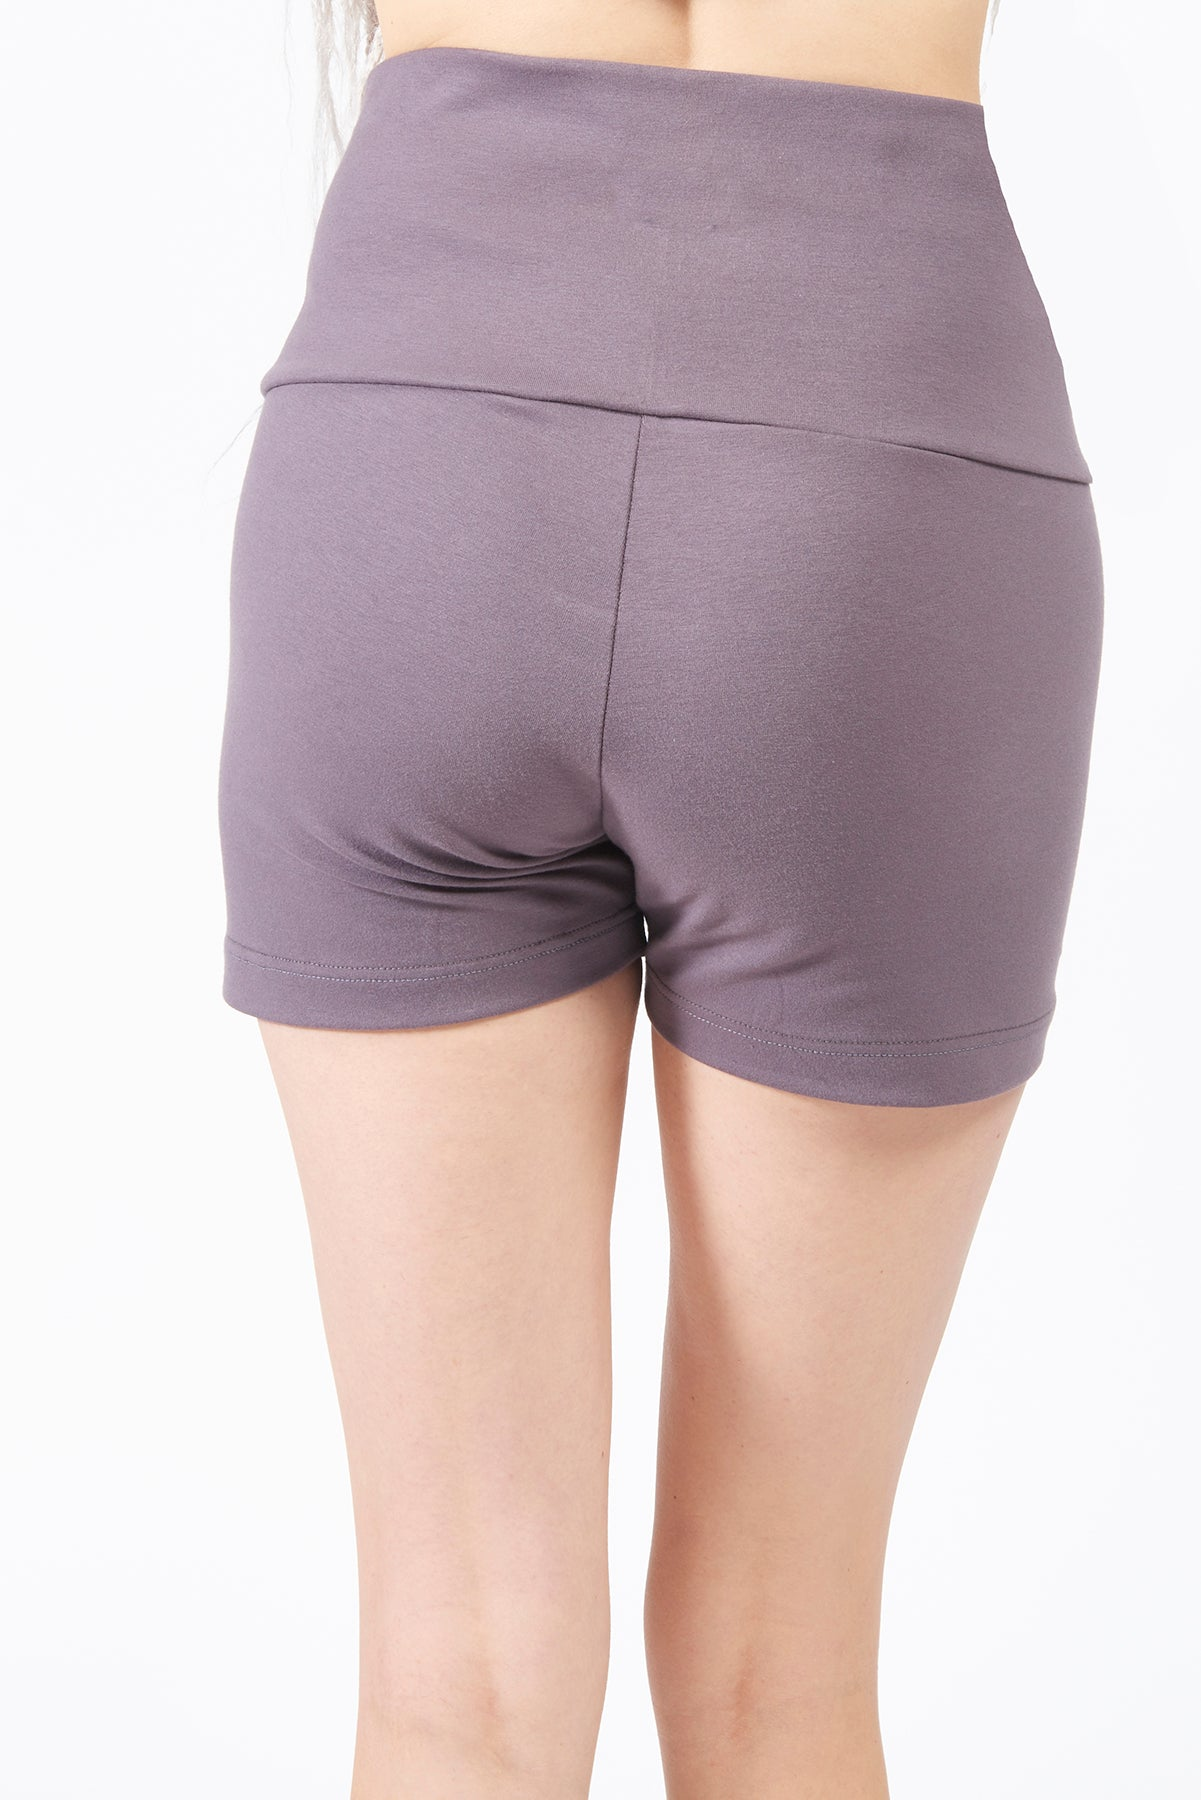 High Waisted Shorts - FOAT